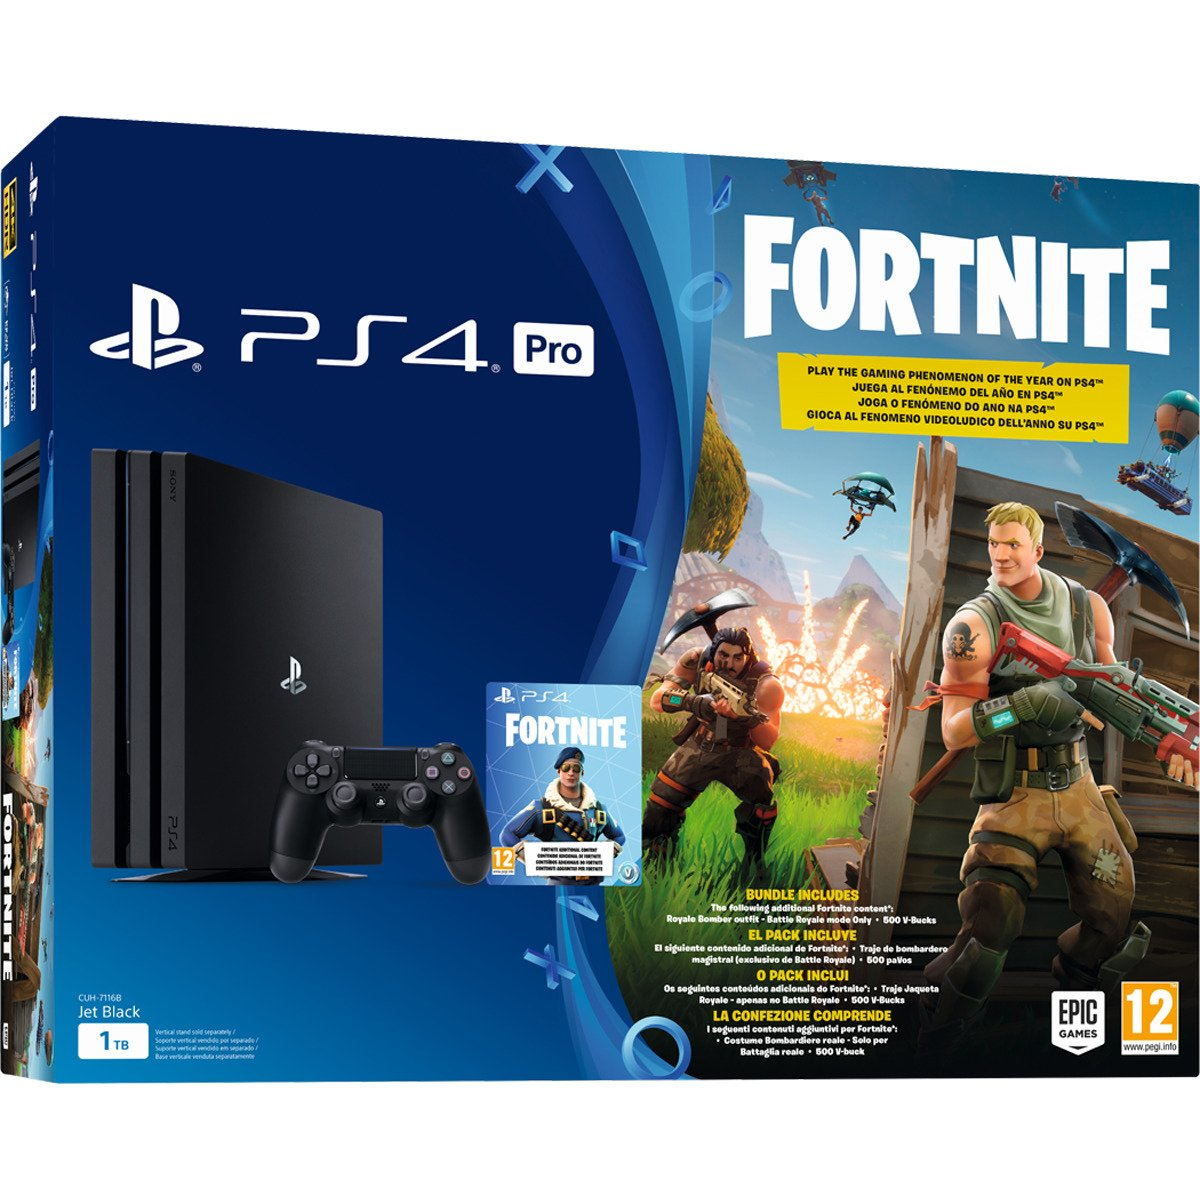 PlayStation 4 (PS4) - Consola Pro 1Tb + Fortnite Voucher: Sony ...